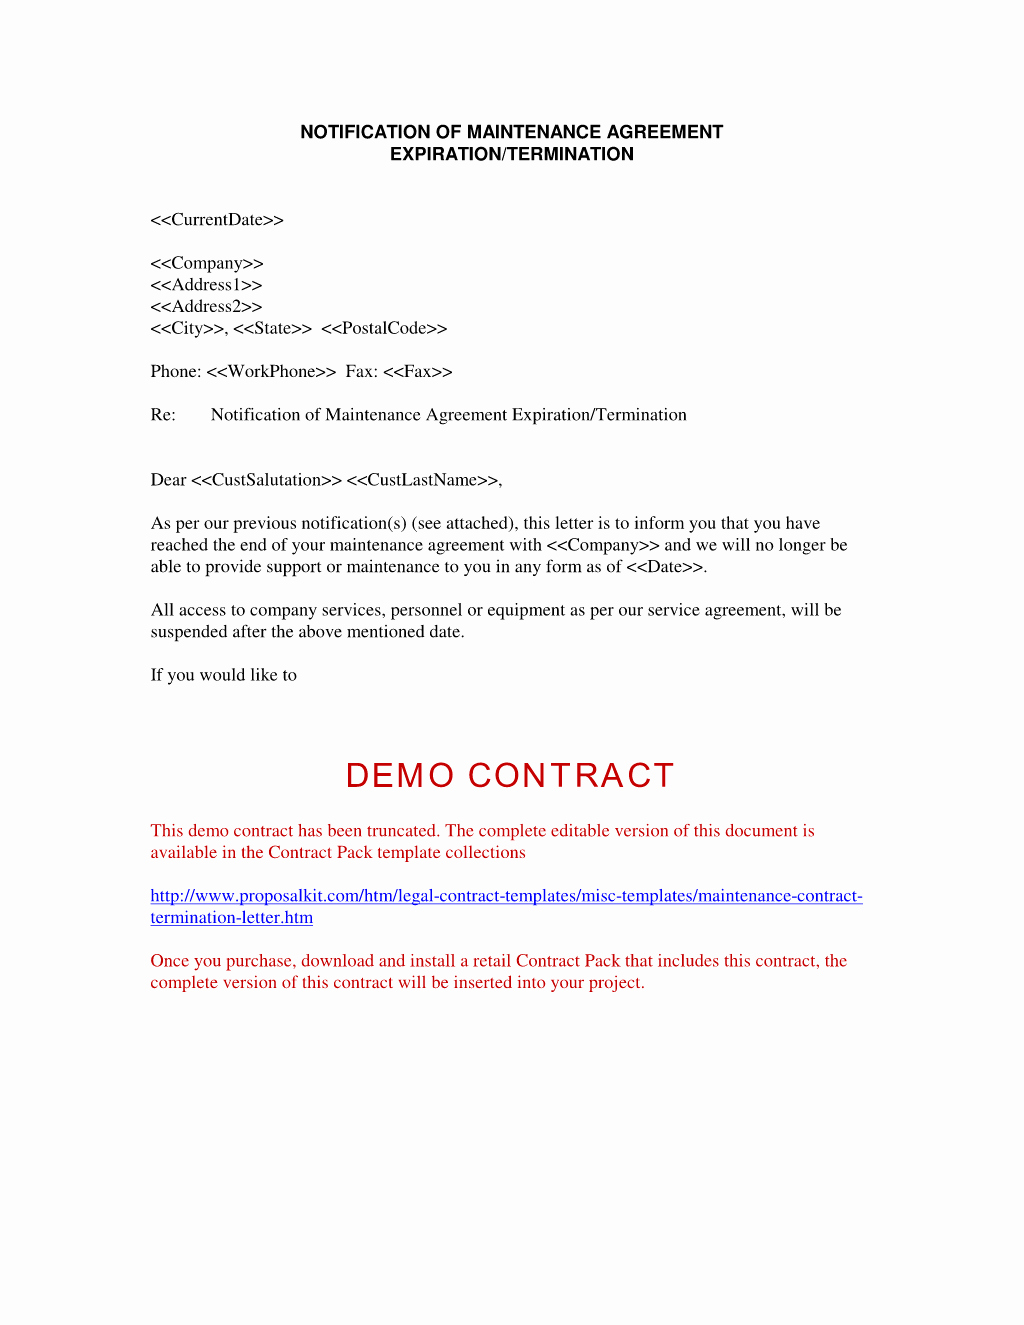 Service Agreement Termination Letter Beautiful Contract Termination Letter Free Printable Documents